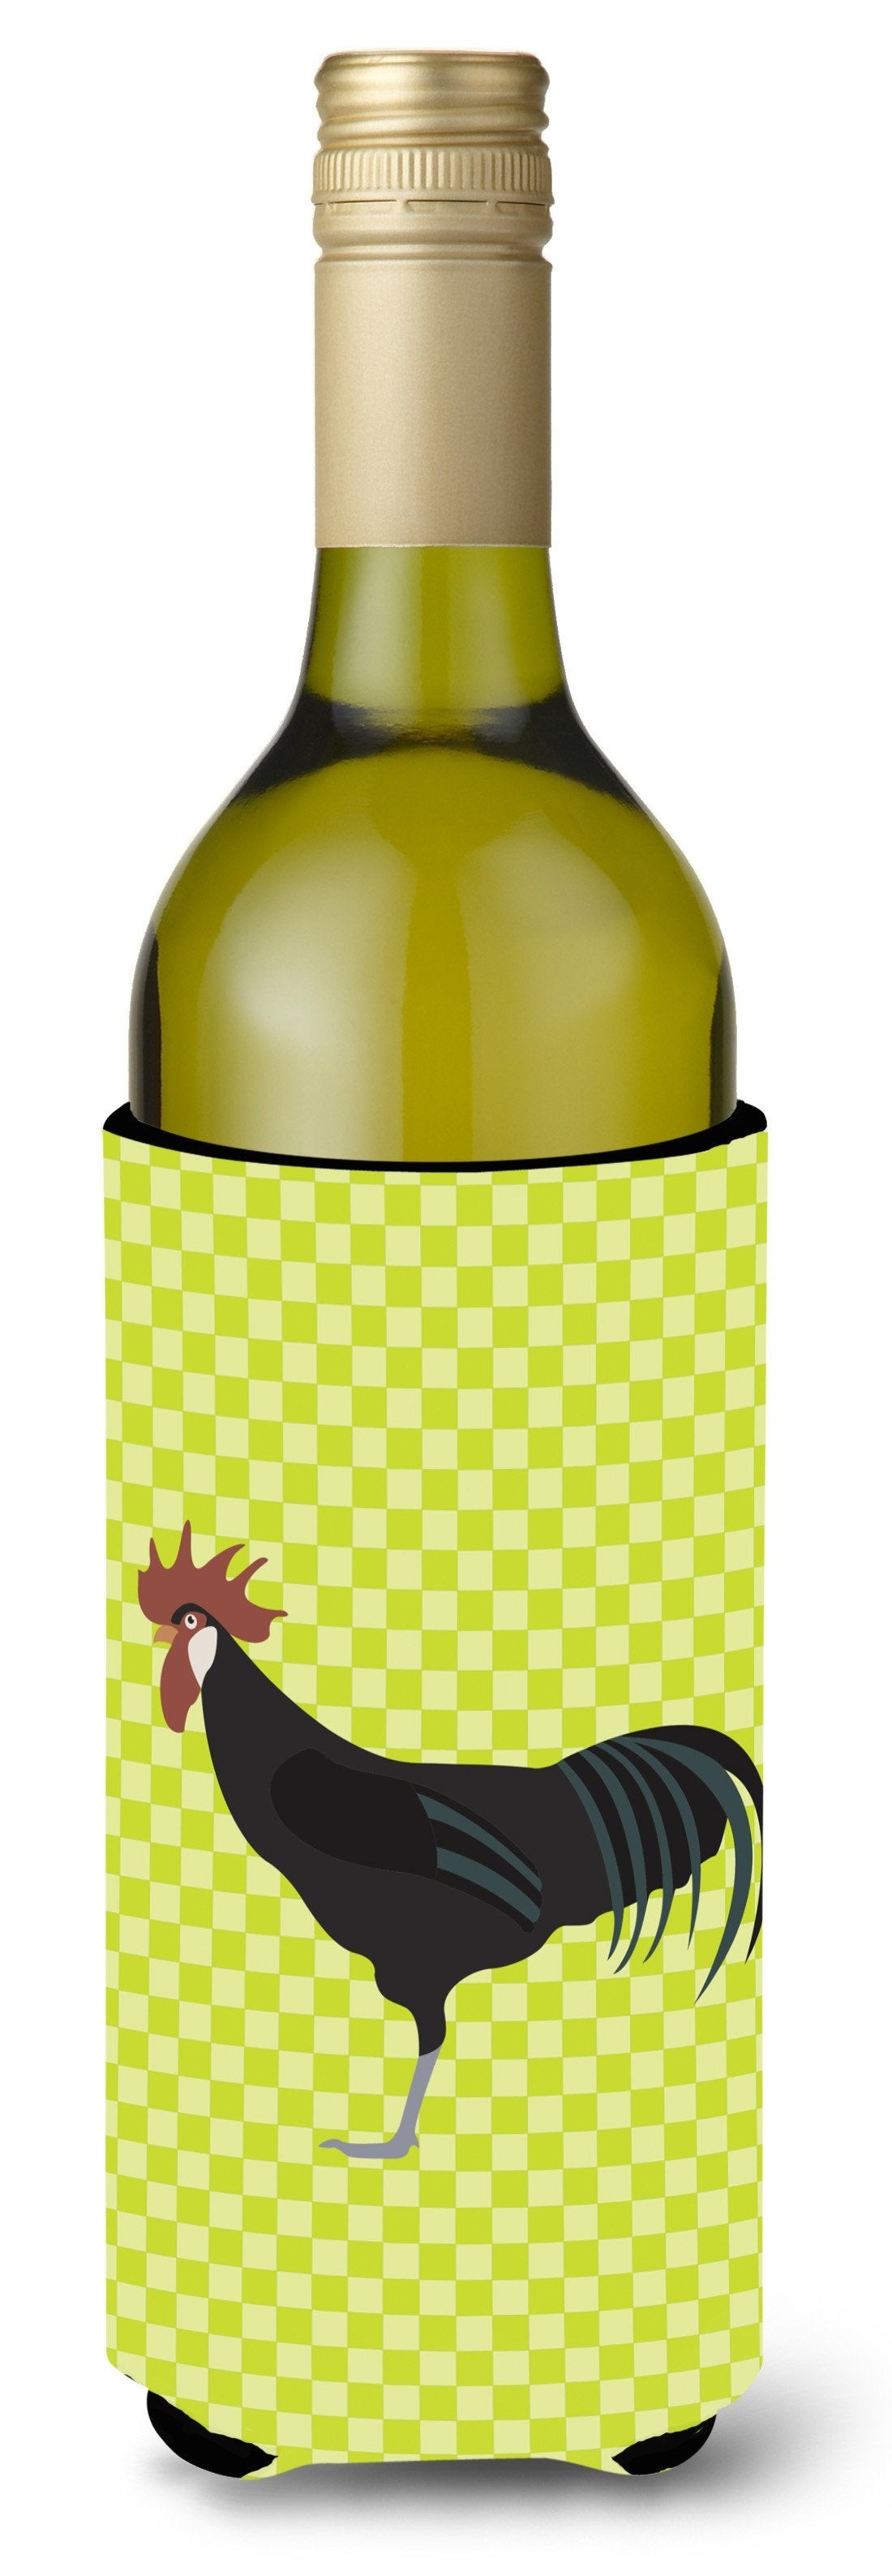 Minorca Ctalalan Chicken Green Wine Bottle Beverge Insulator Hugger BB7667LITERK by Caroline's Treasures